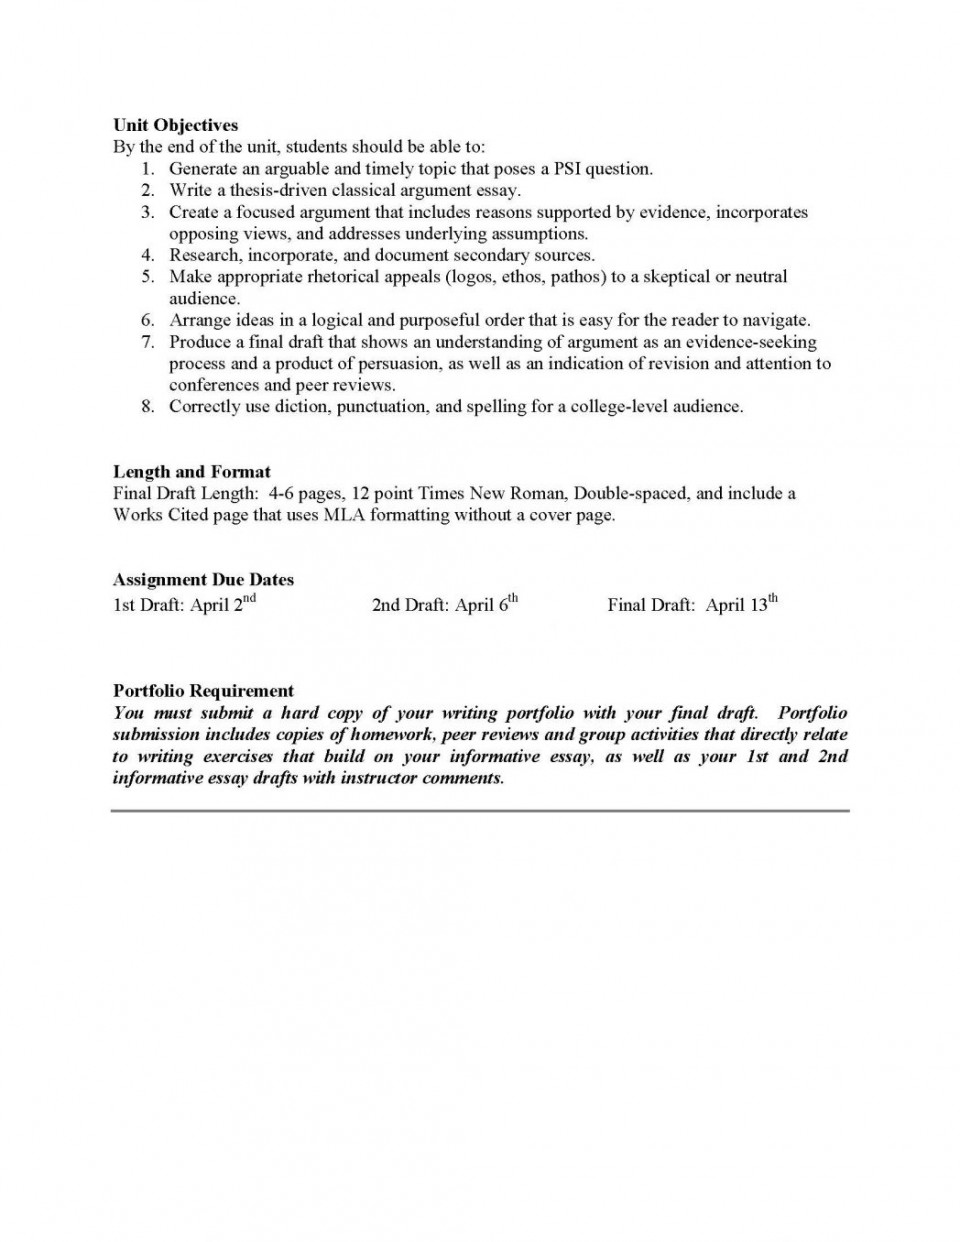 001 Homework Essay No Persuasive On Stem Cell Research Weekends Classical Argument Unit Assignment P Policy 1048x1356 Unusual Free Help In Hindi Examples 960